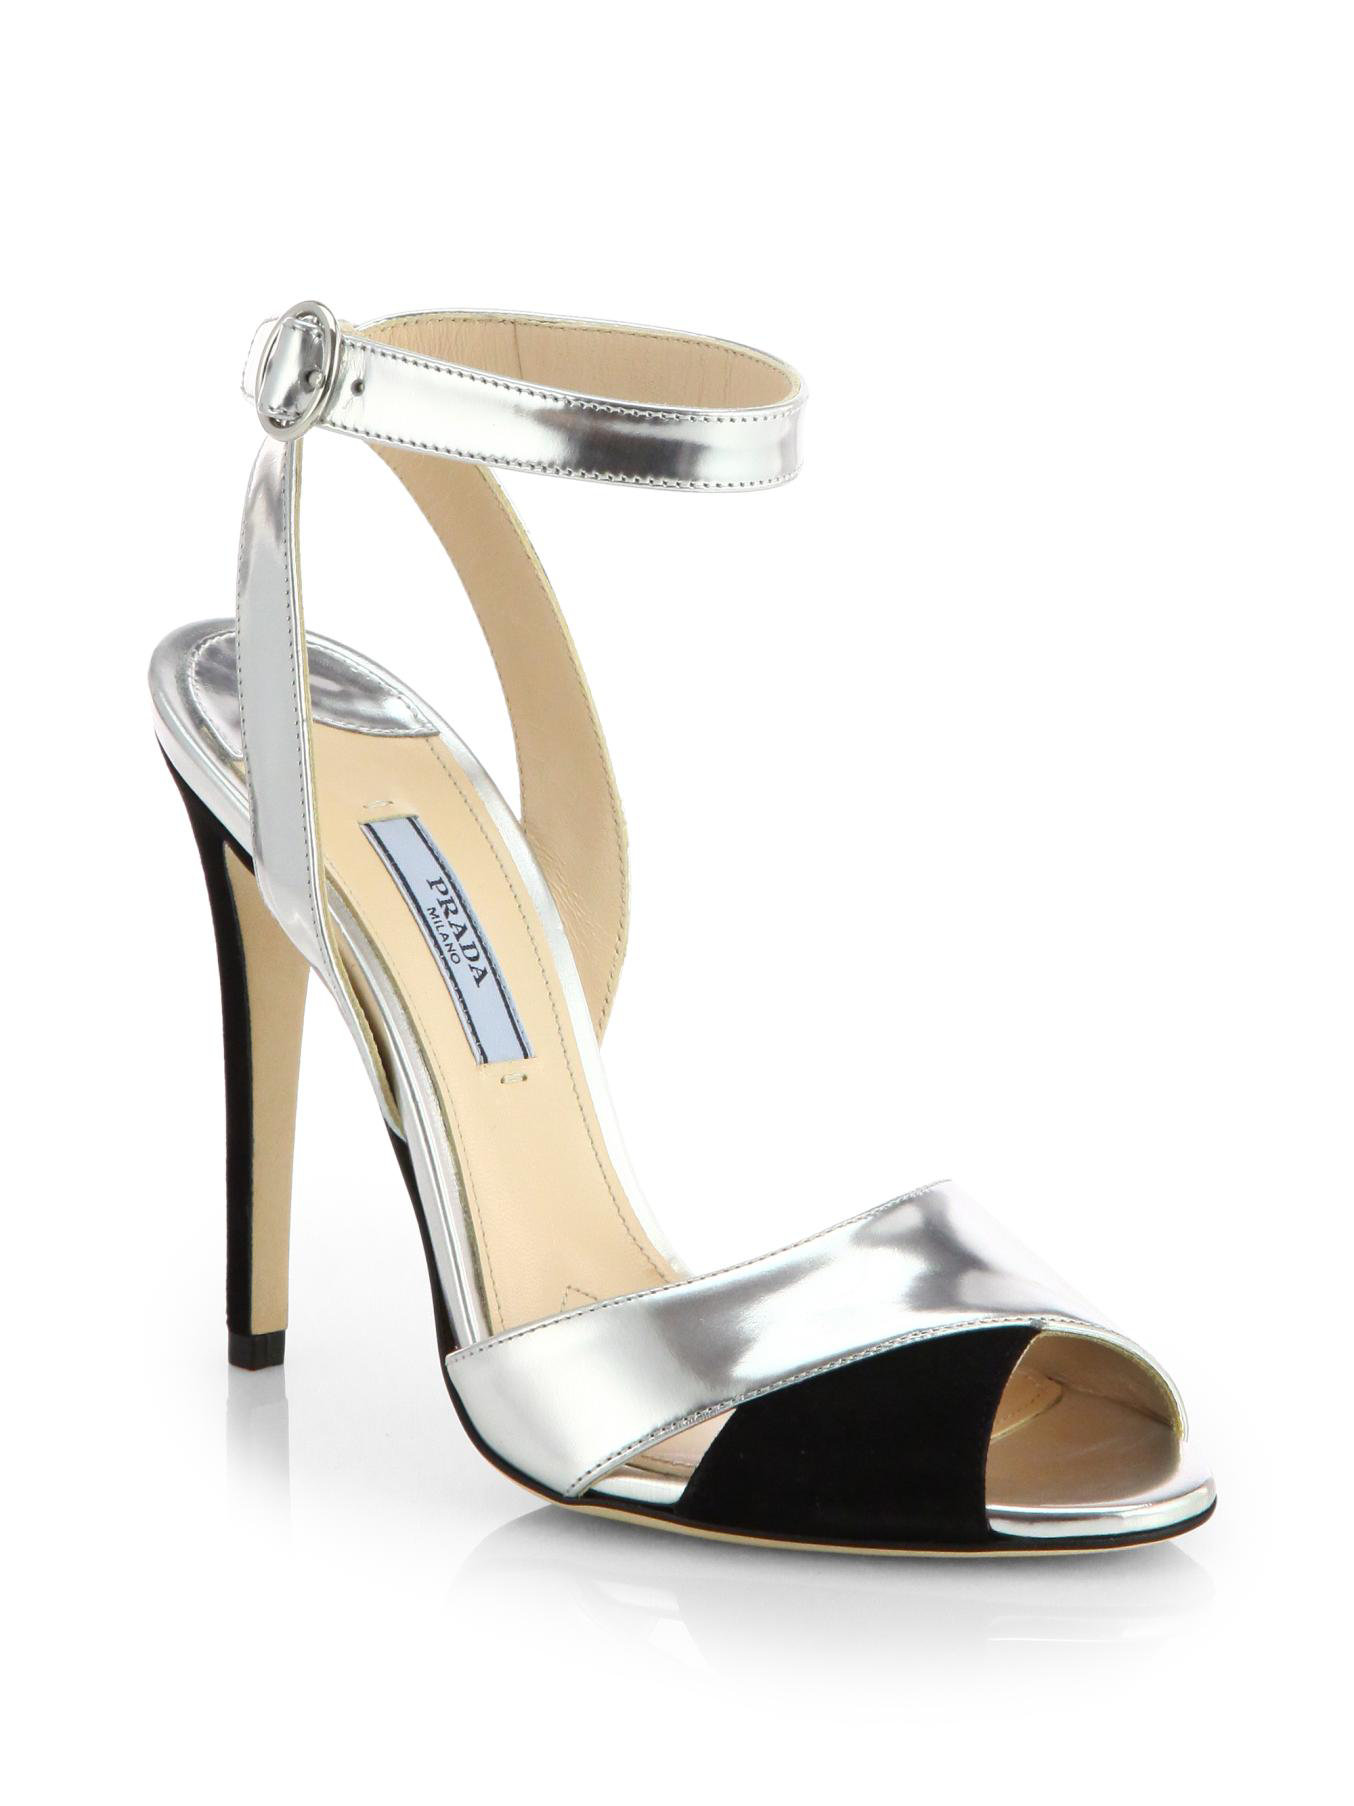 Lyst Prada Metallic Leather Suede Evening Sandals In